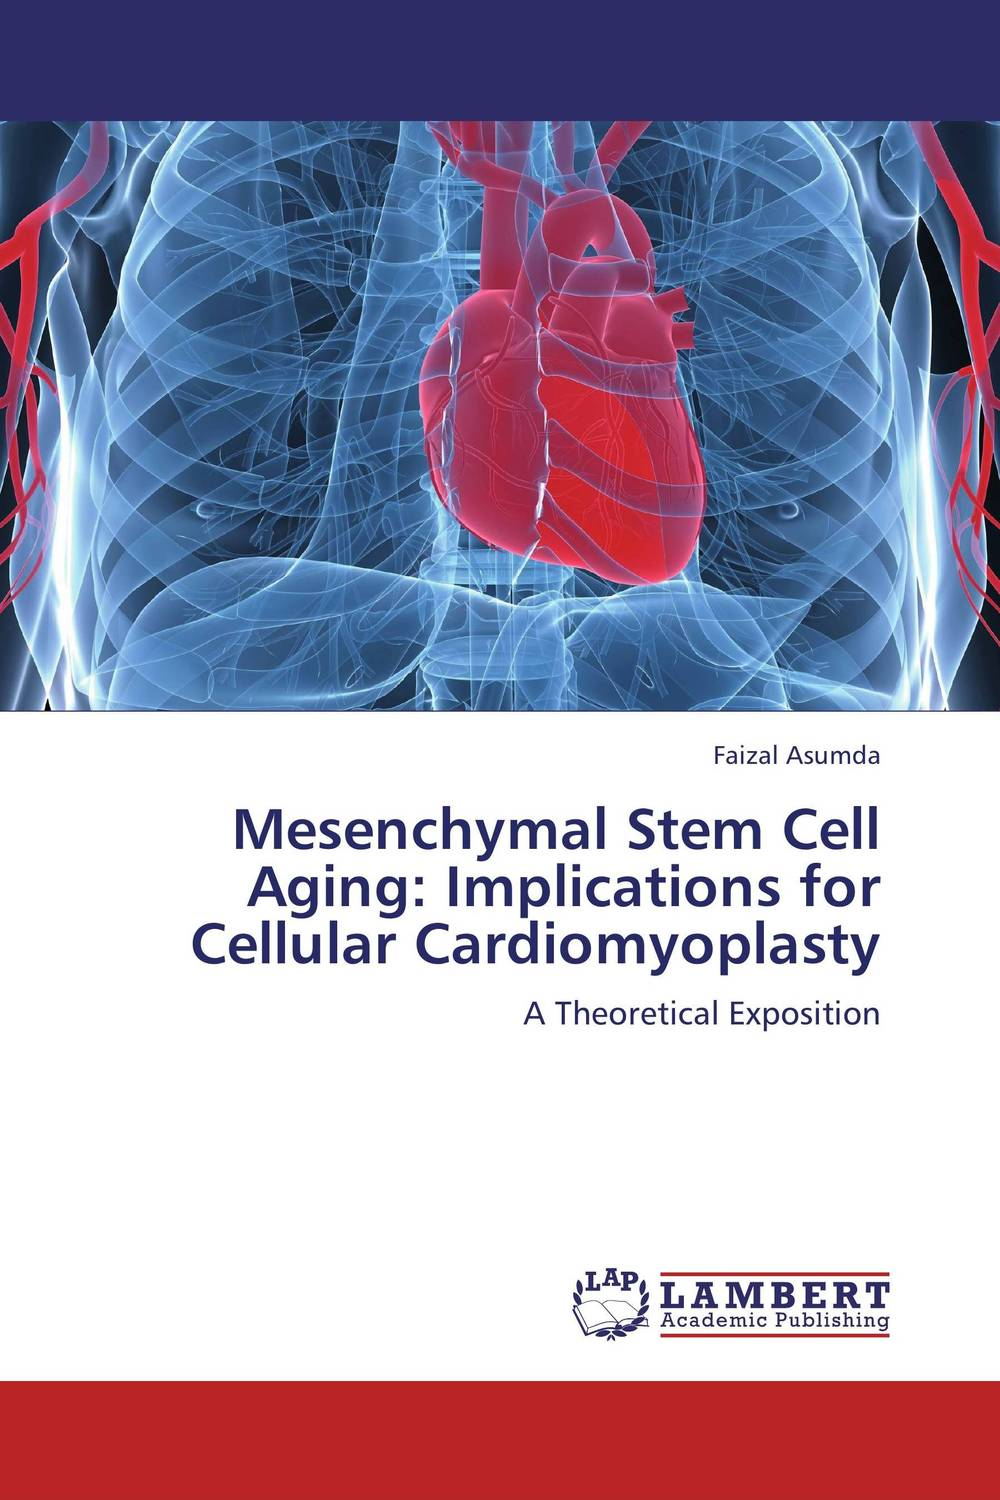 Mesenchymal Stem Cell Aging: Implications for Cellular Cardiomyoplasty